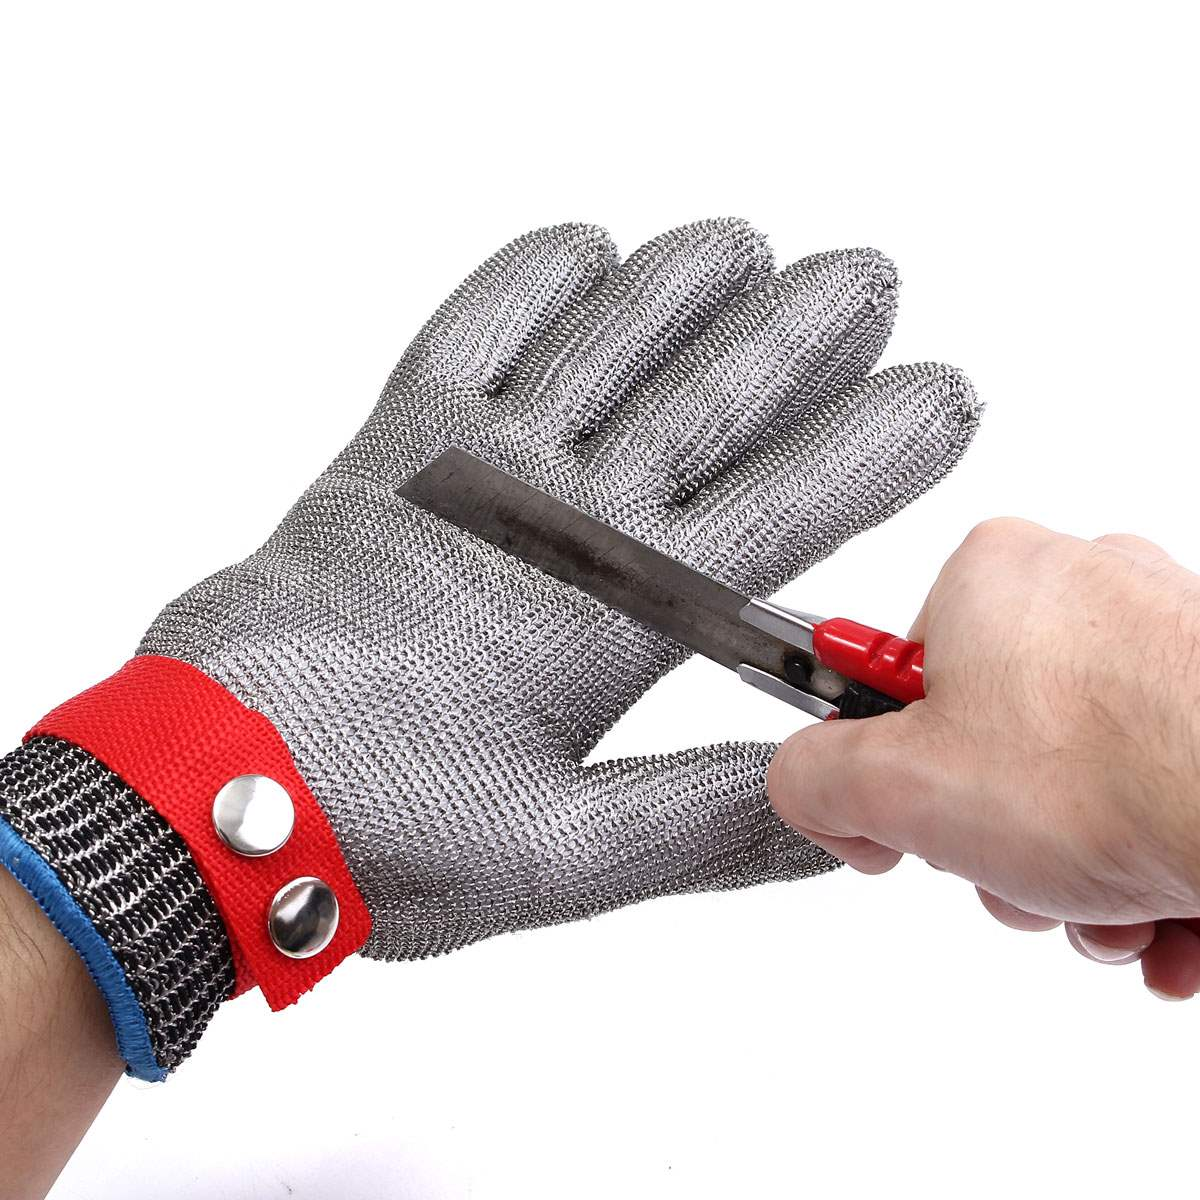 Safety Cut Proof Stab Resistant Stainless Steel Metal Mesh Gloves Grade 5 Protective Gloves top quality 304l stainless steel mesh knife cut resistant chain mail protective glove for kitchen butcher working safety